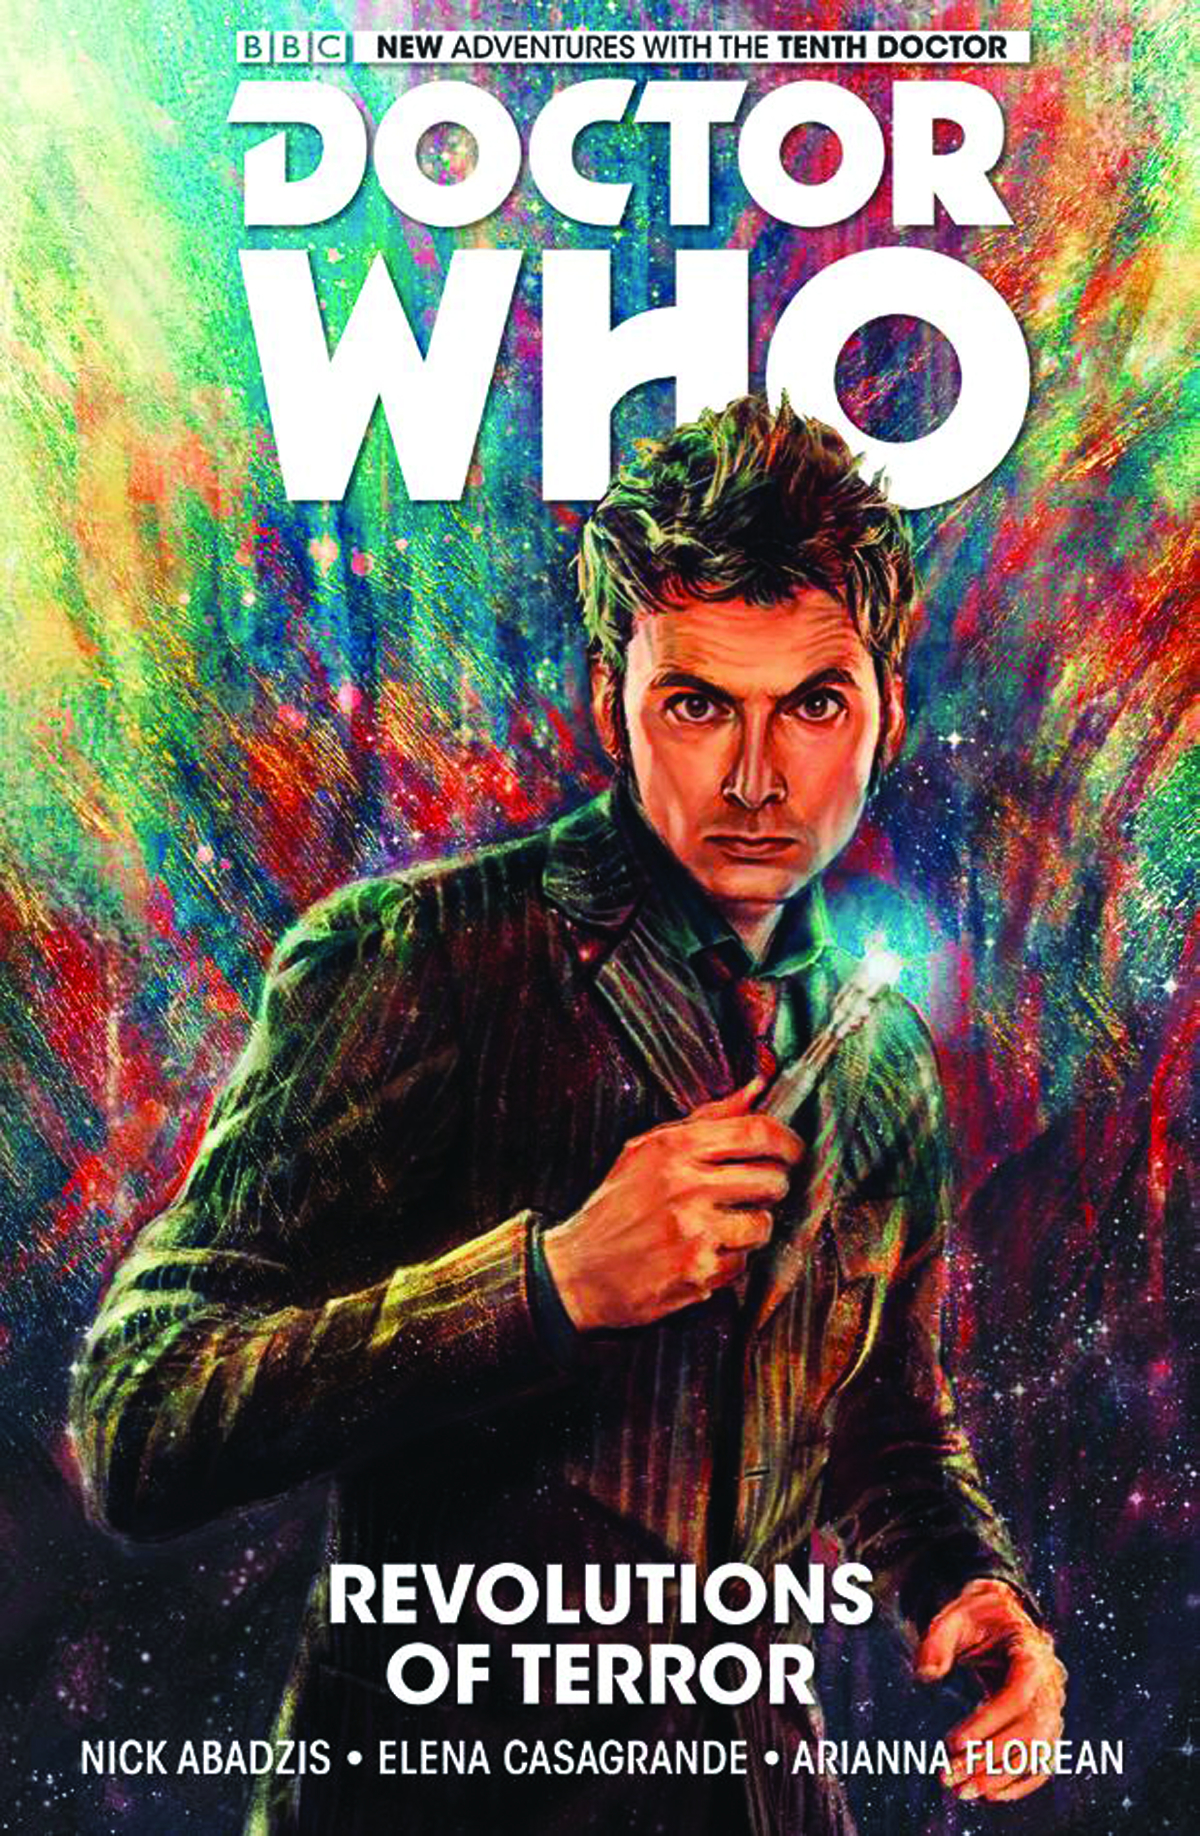 DOCTOR WHO 10TH HC VOL 01 REVOLUTIONS TERROR